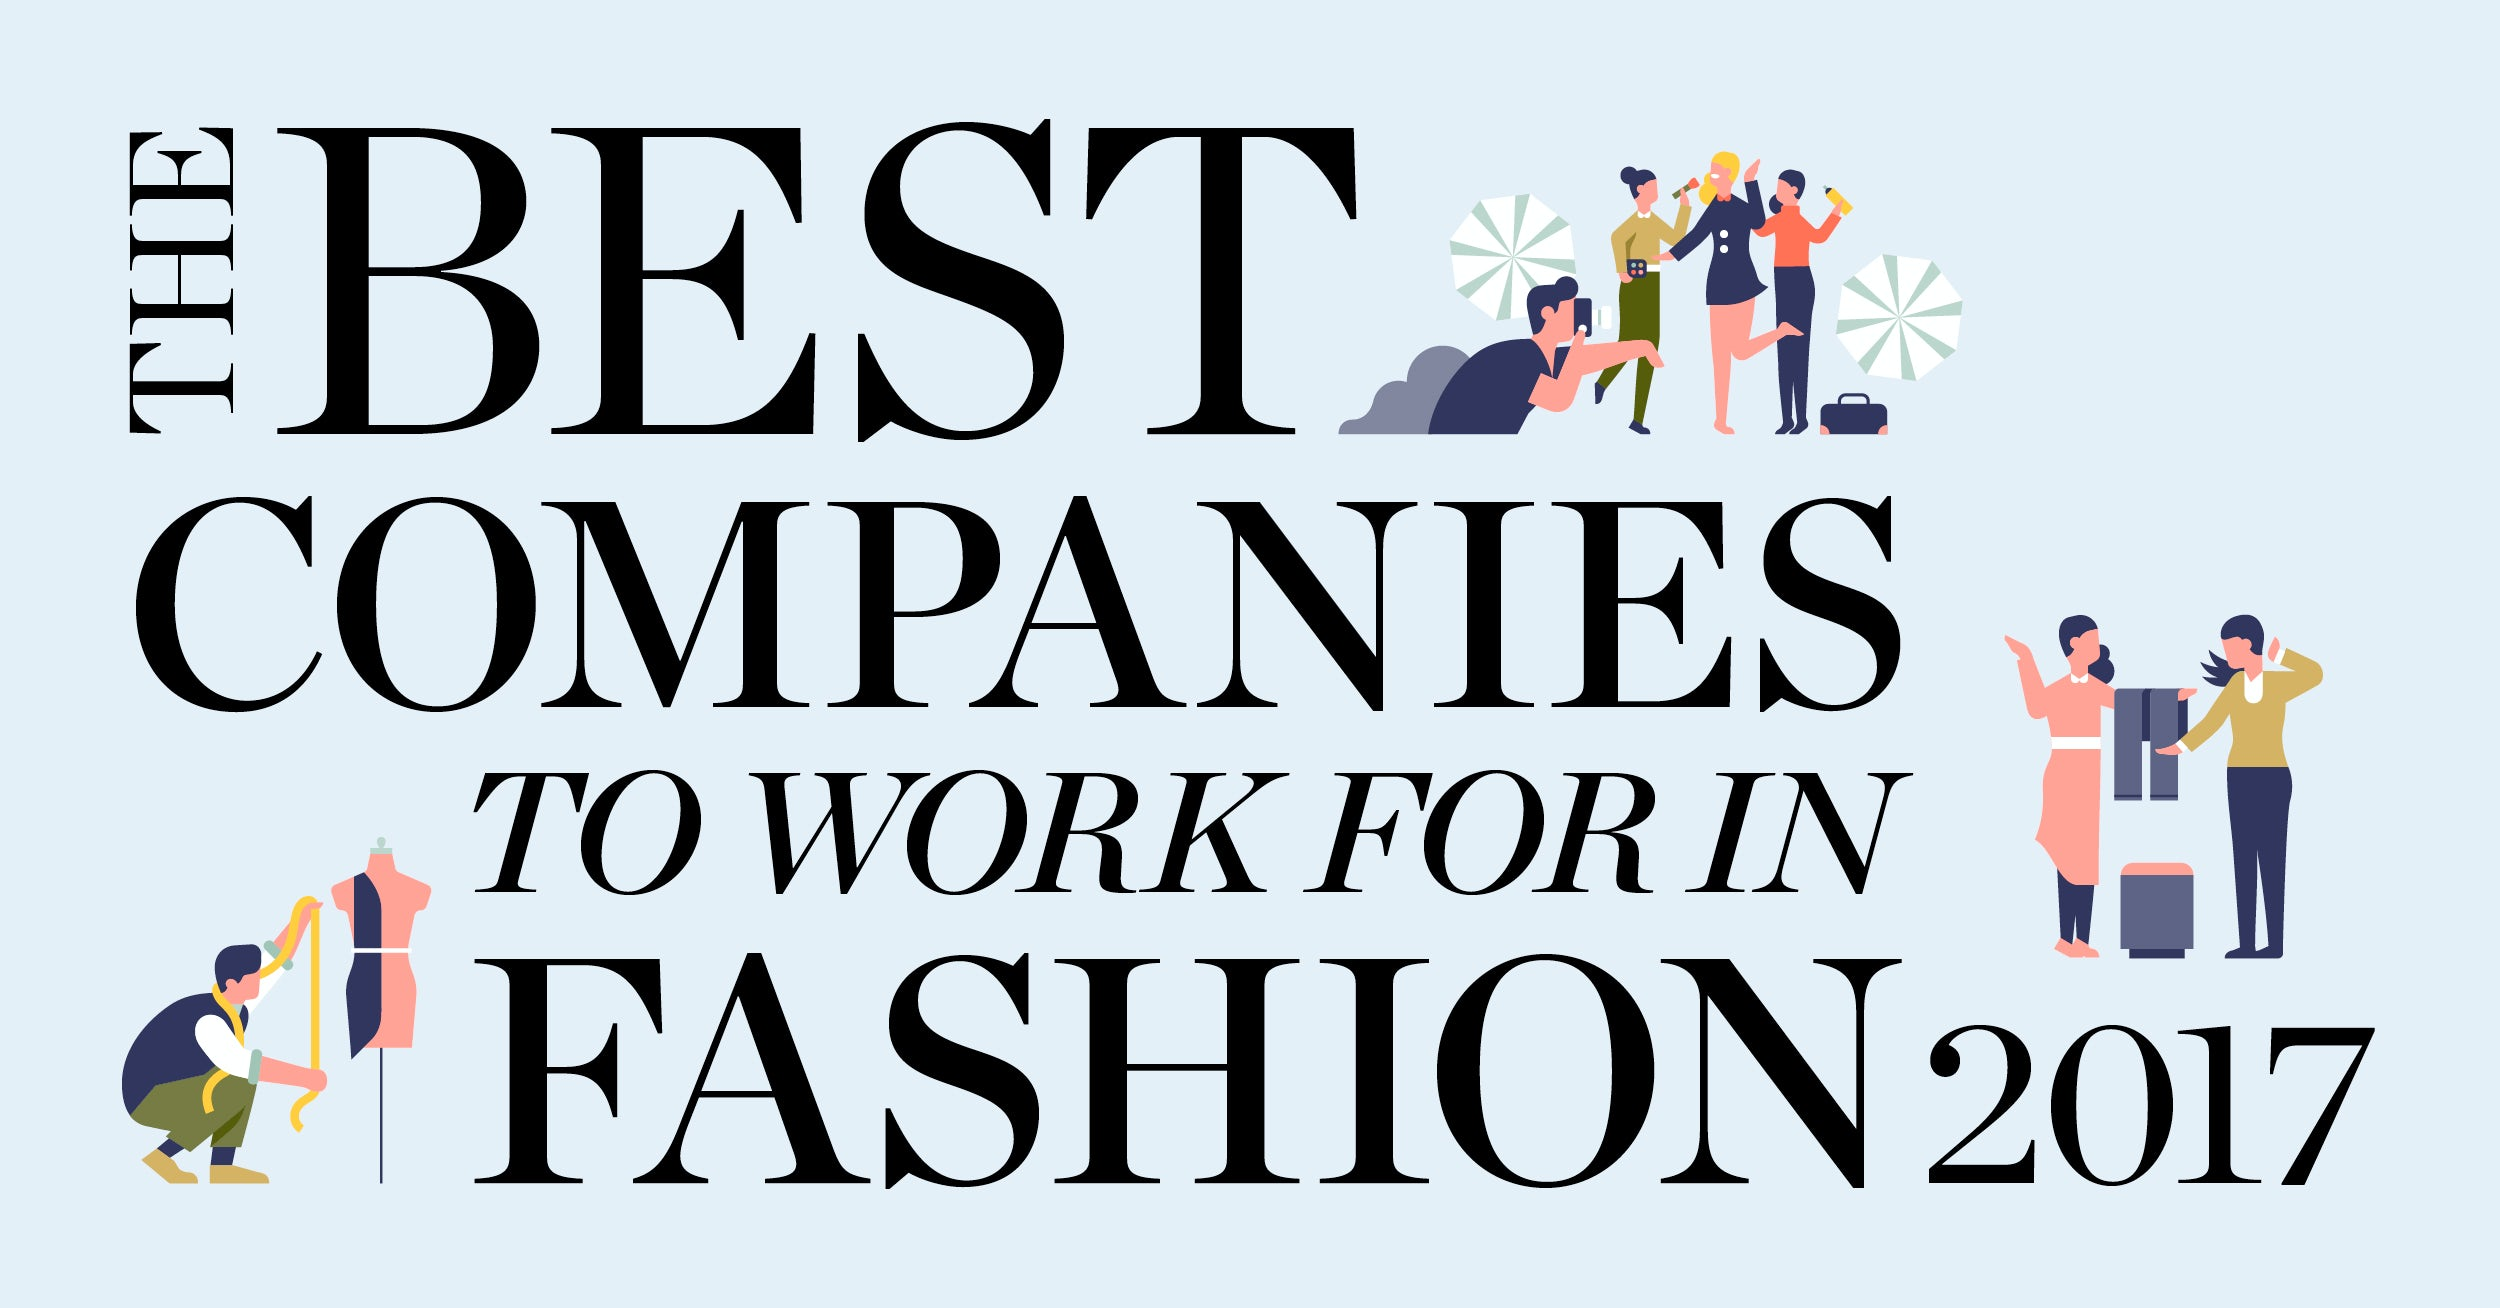 5f4504fad The 15 Best Companies to Work for in Fashion 2017